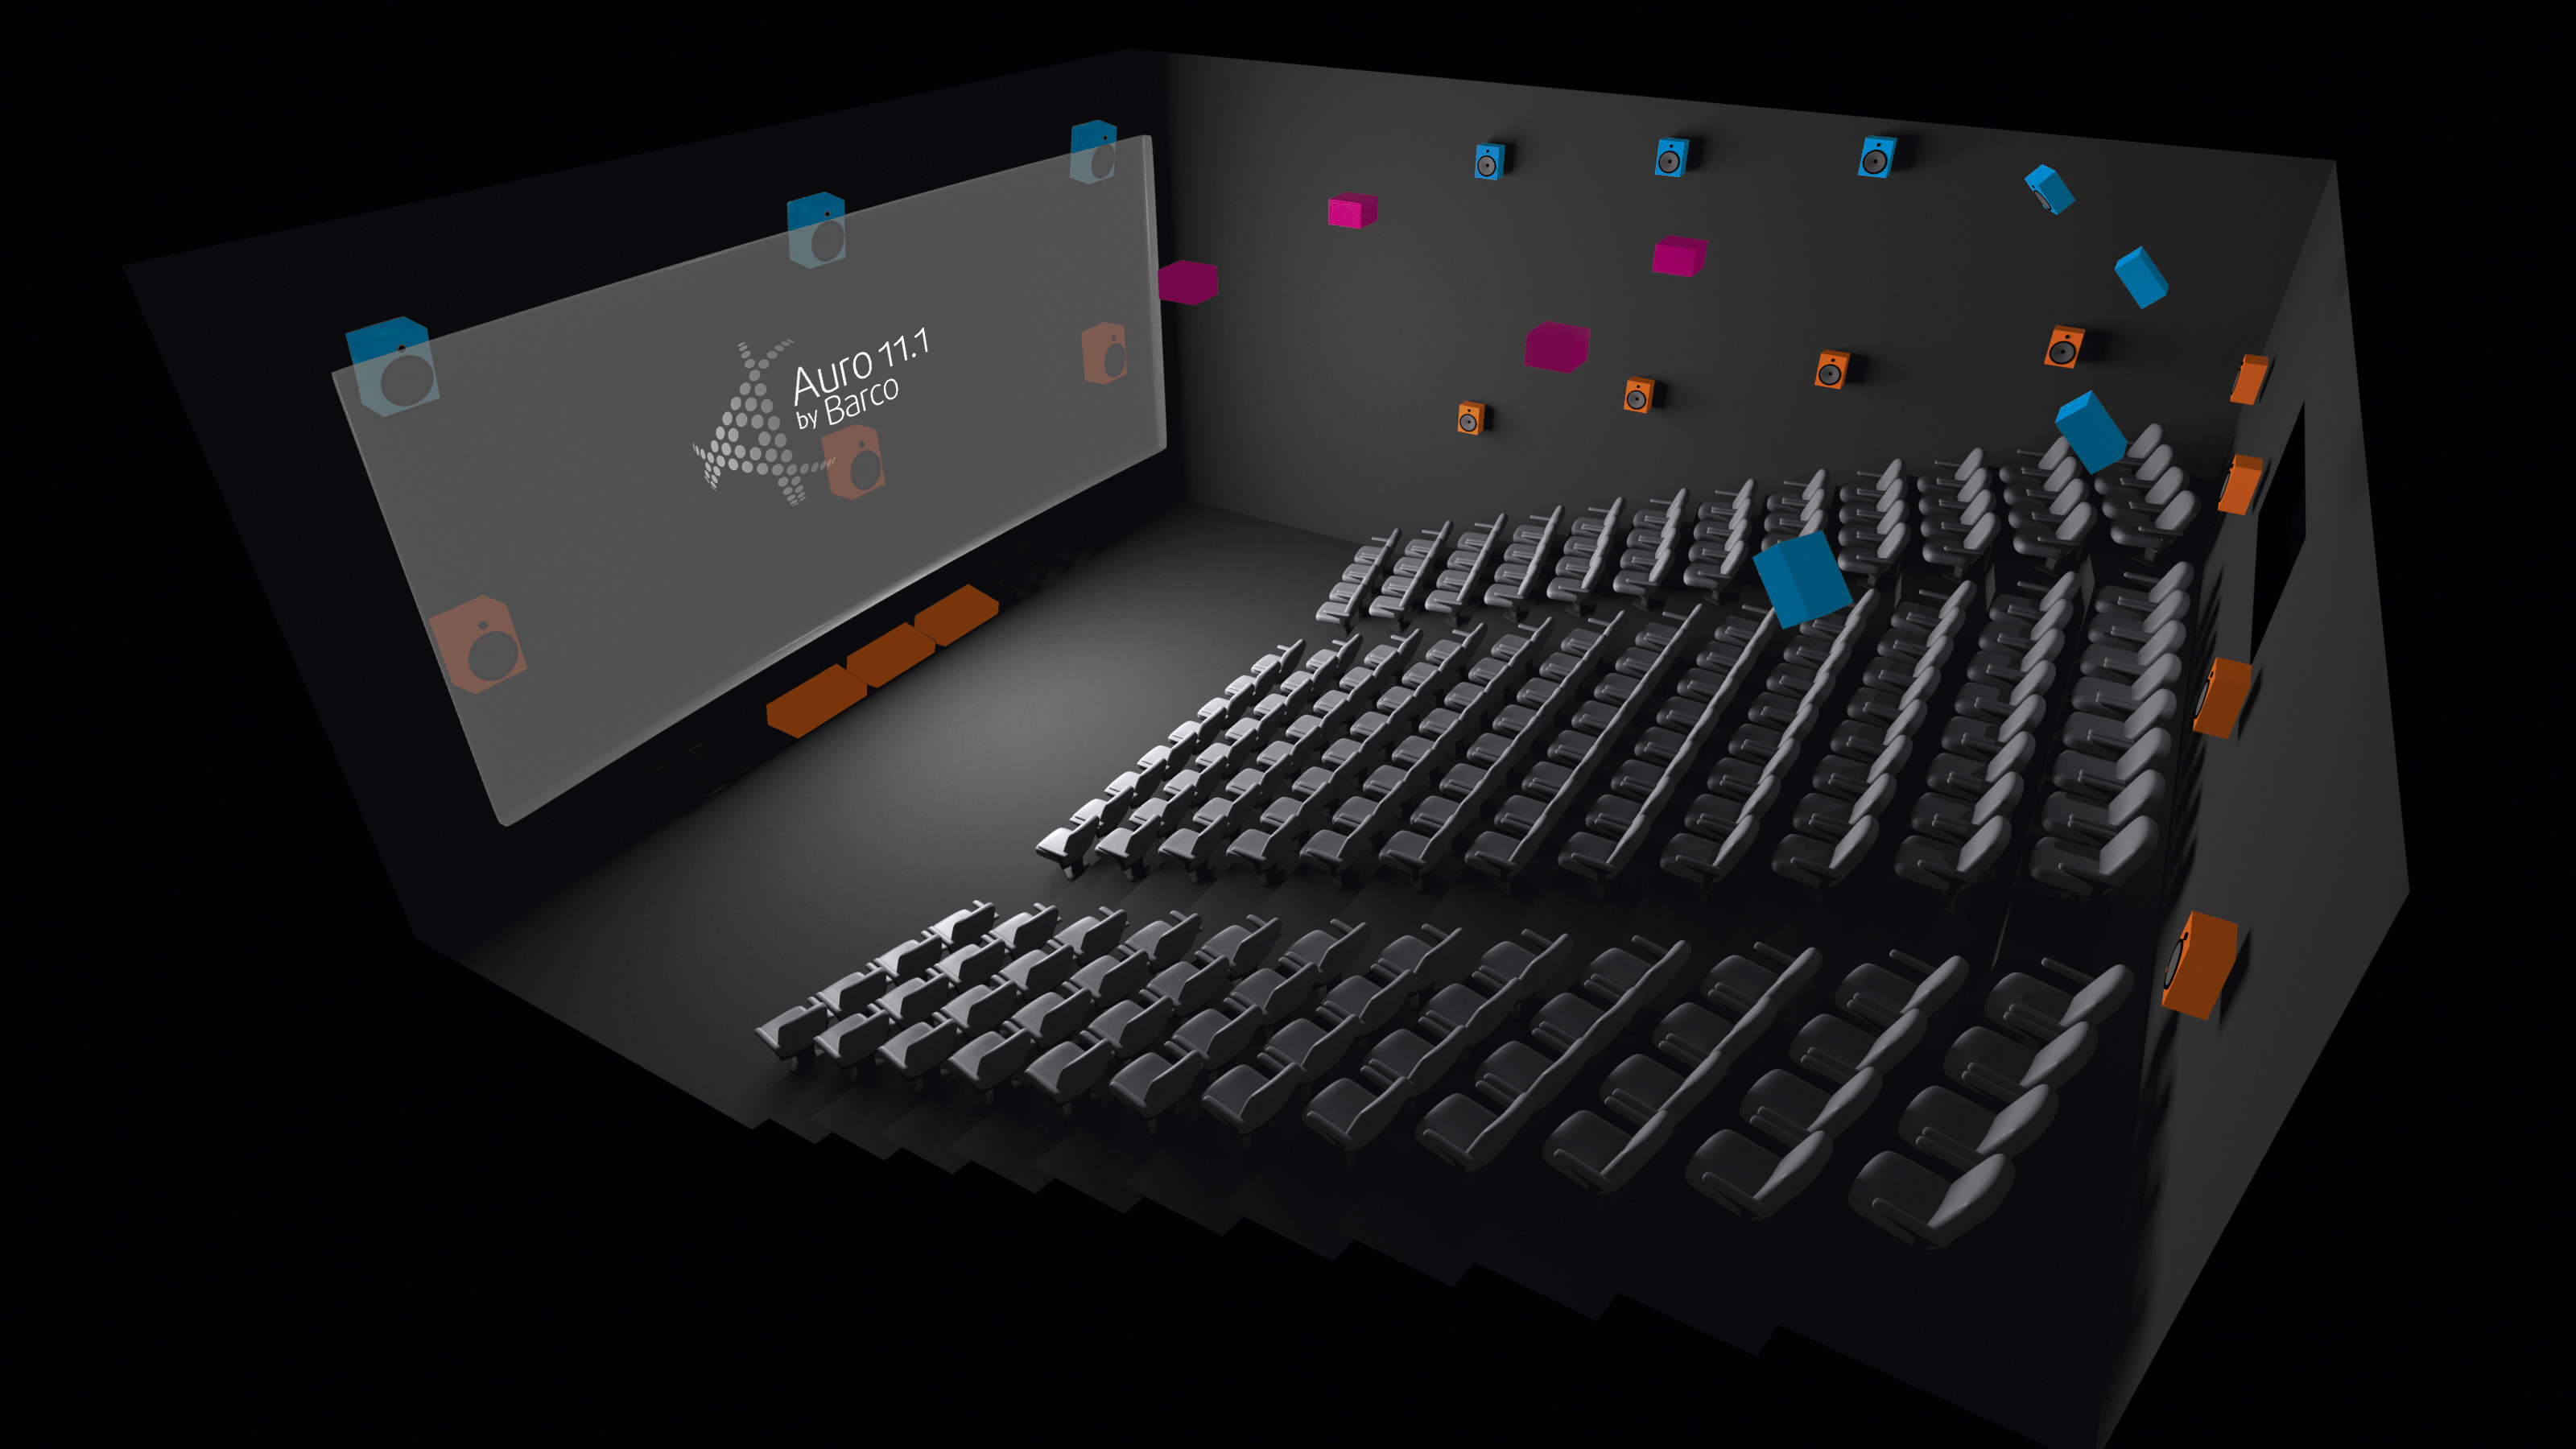 Qube Cinema Prepares Imbs For Auro 11 1 By Barco Immersive